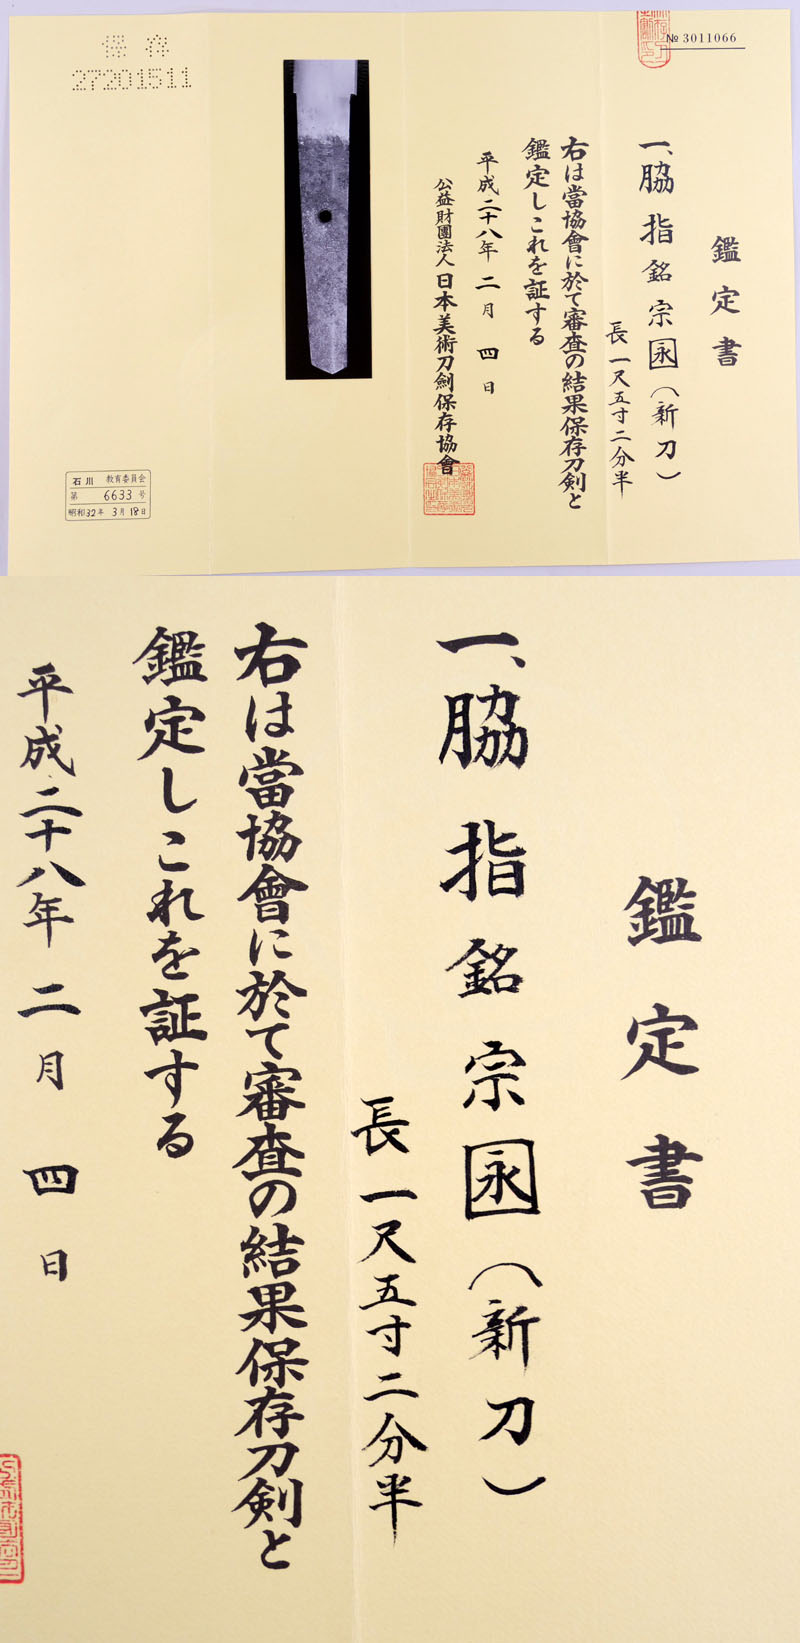 宗永 Picture of Certificate